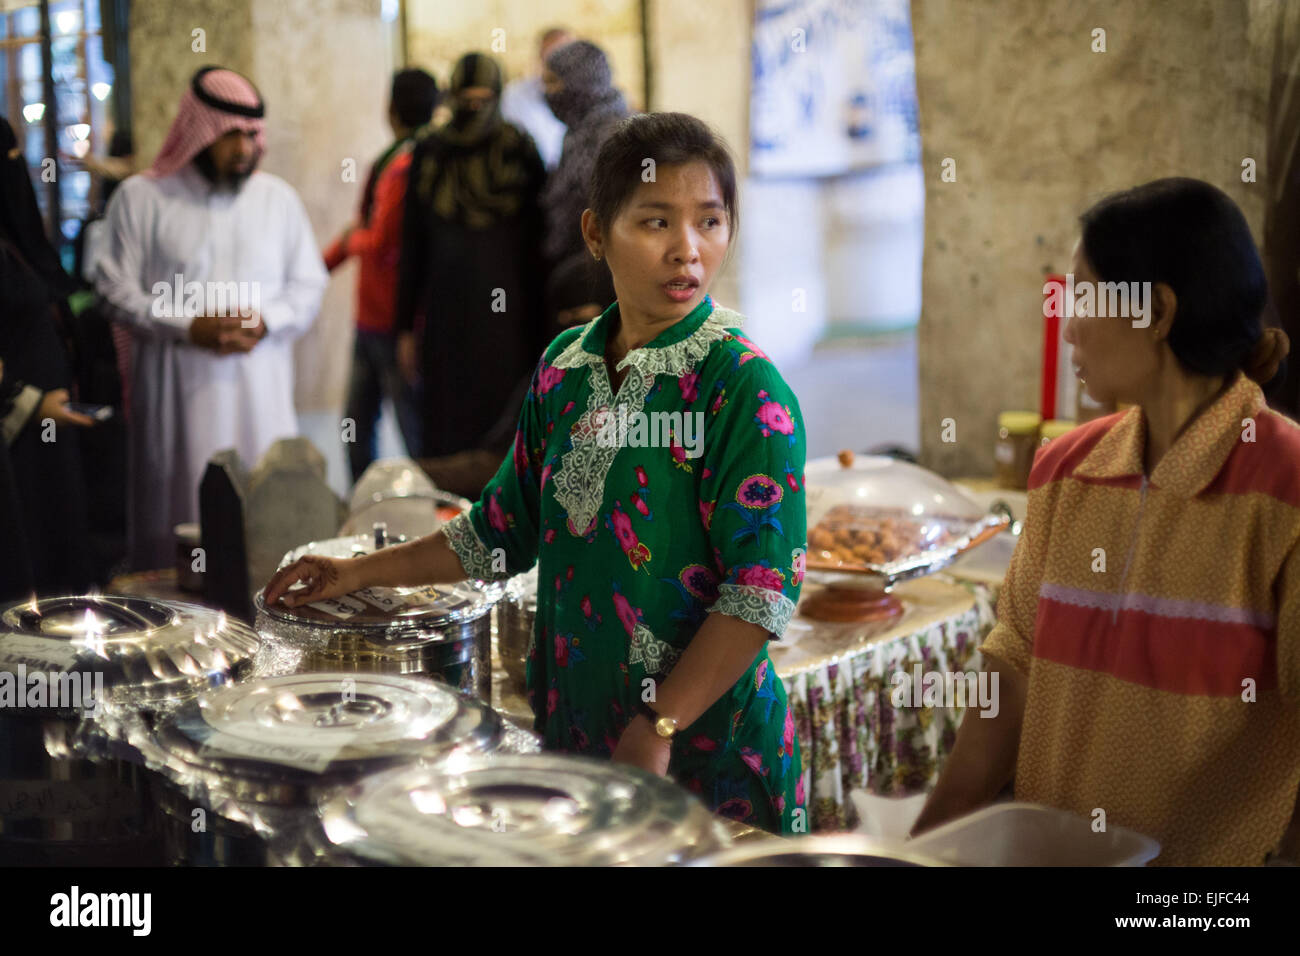 housemaids serve traditional home-made arab food in souq waqif in